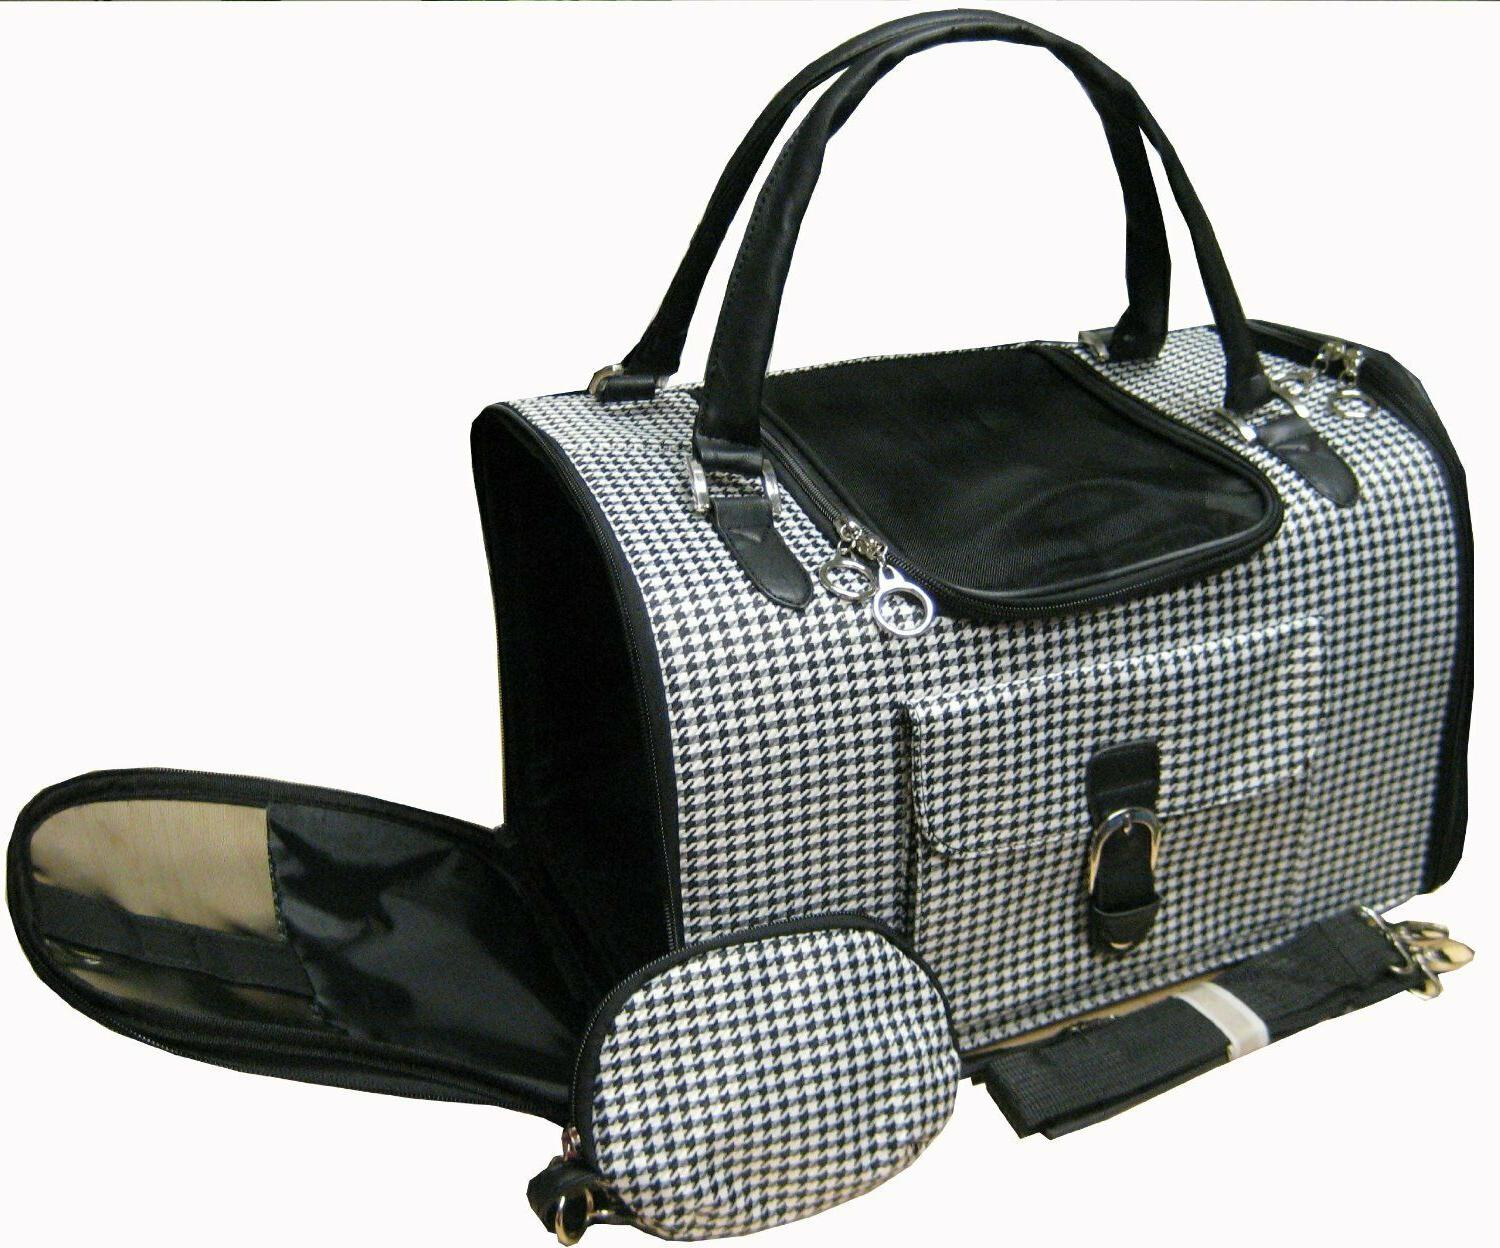 NEW Pet Cat/Dog Soft Hounds-tooth Travel Carrier/Tote/Should